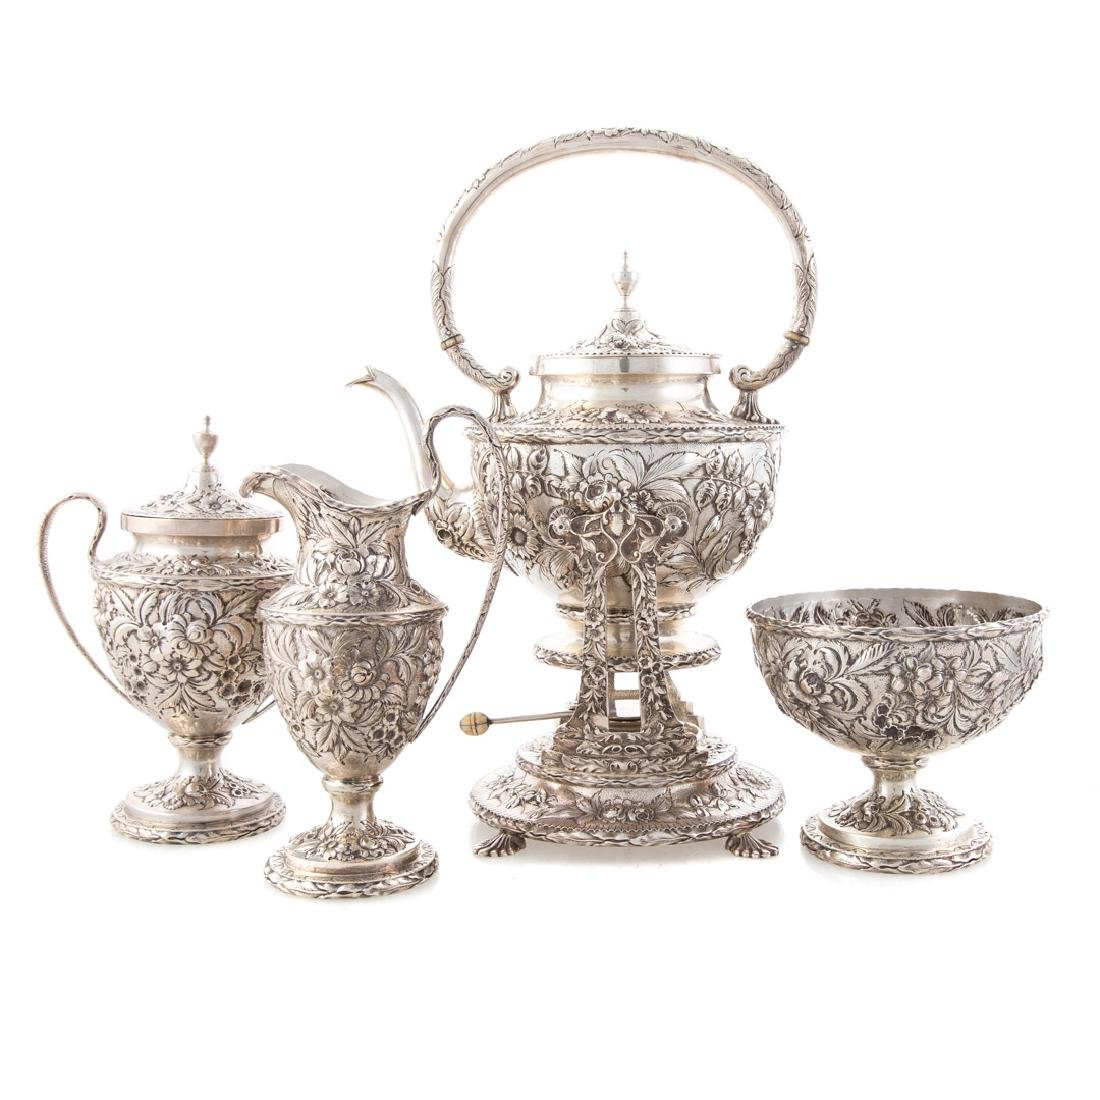 Kirk repousse sterling silver tea service